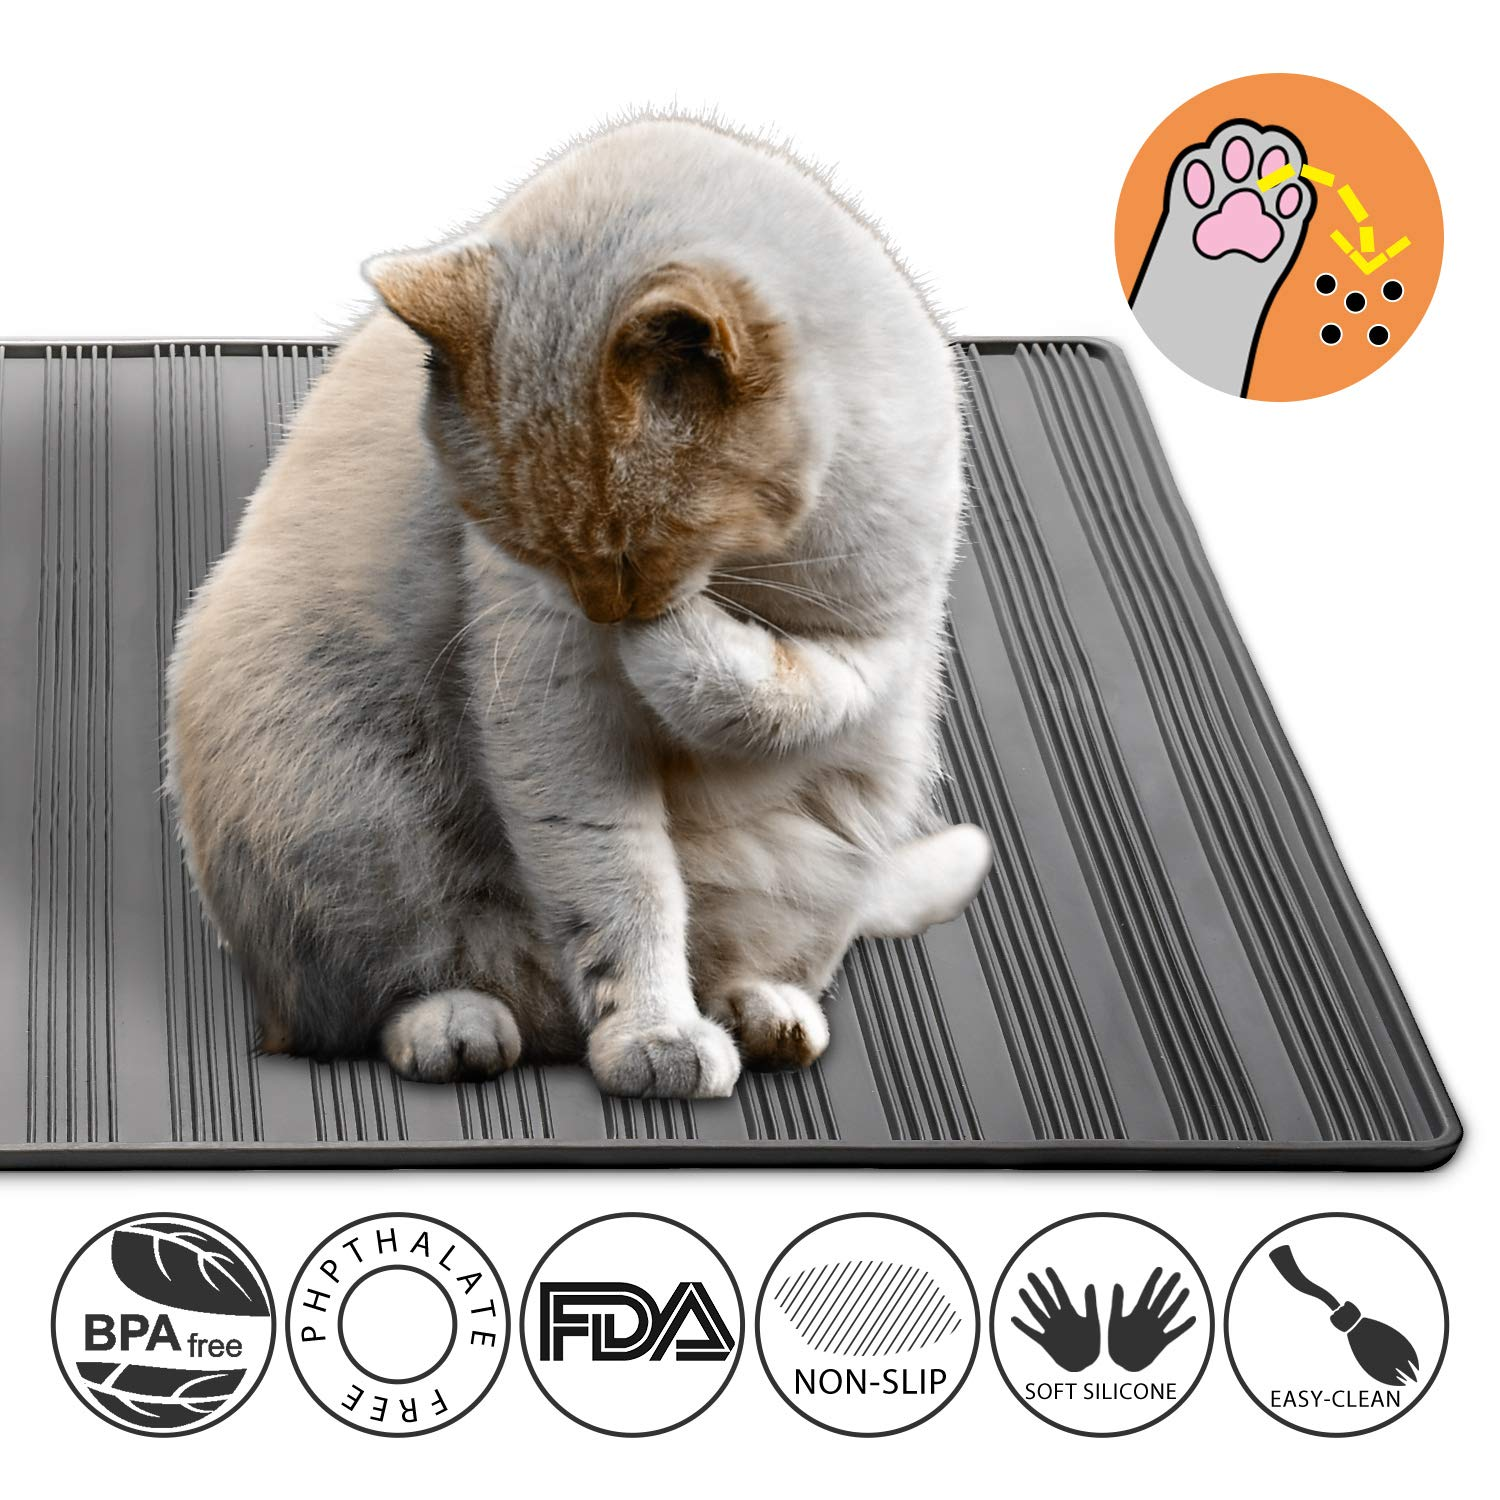 KGA Waterproof Cat Litter Mat Silicone Anti Slip Scatter Control Anti Microbial FDA Grade Silicone Easy Cleaning Cat Litter Trapper